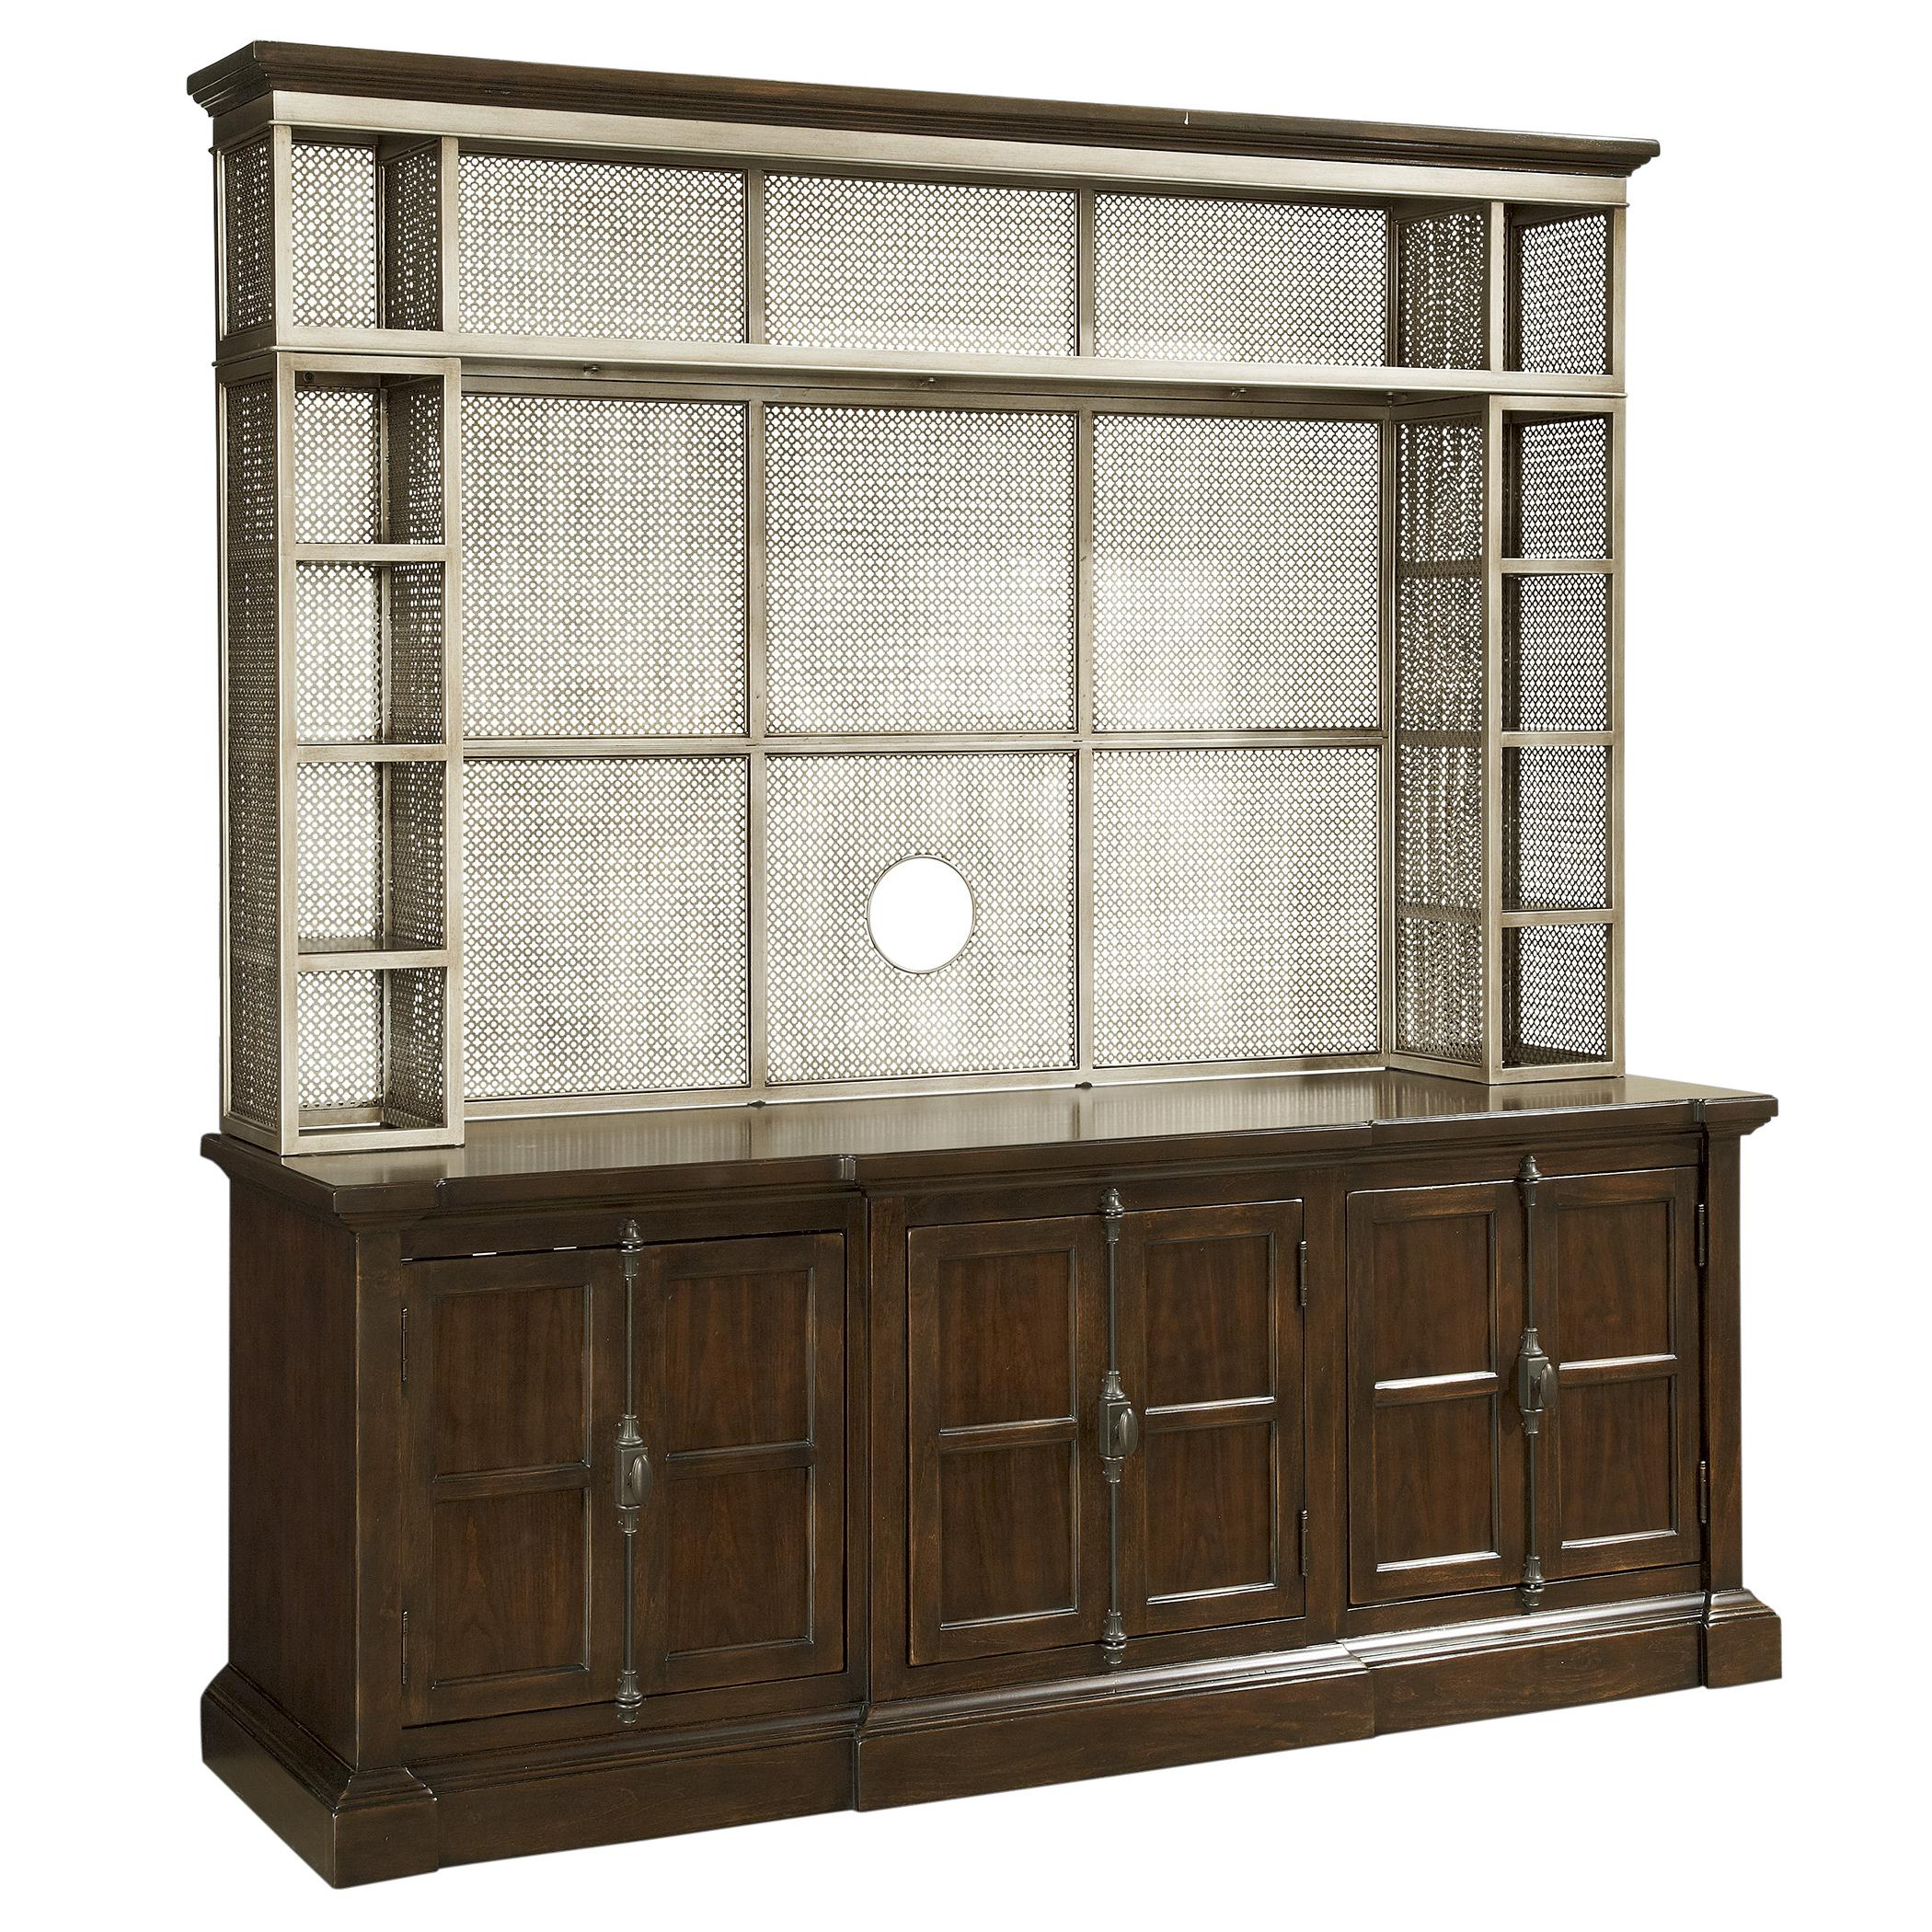 Morris Home Furnishings Providence Providence 2 Piece Console and Hutch - Item Number: 356966C